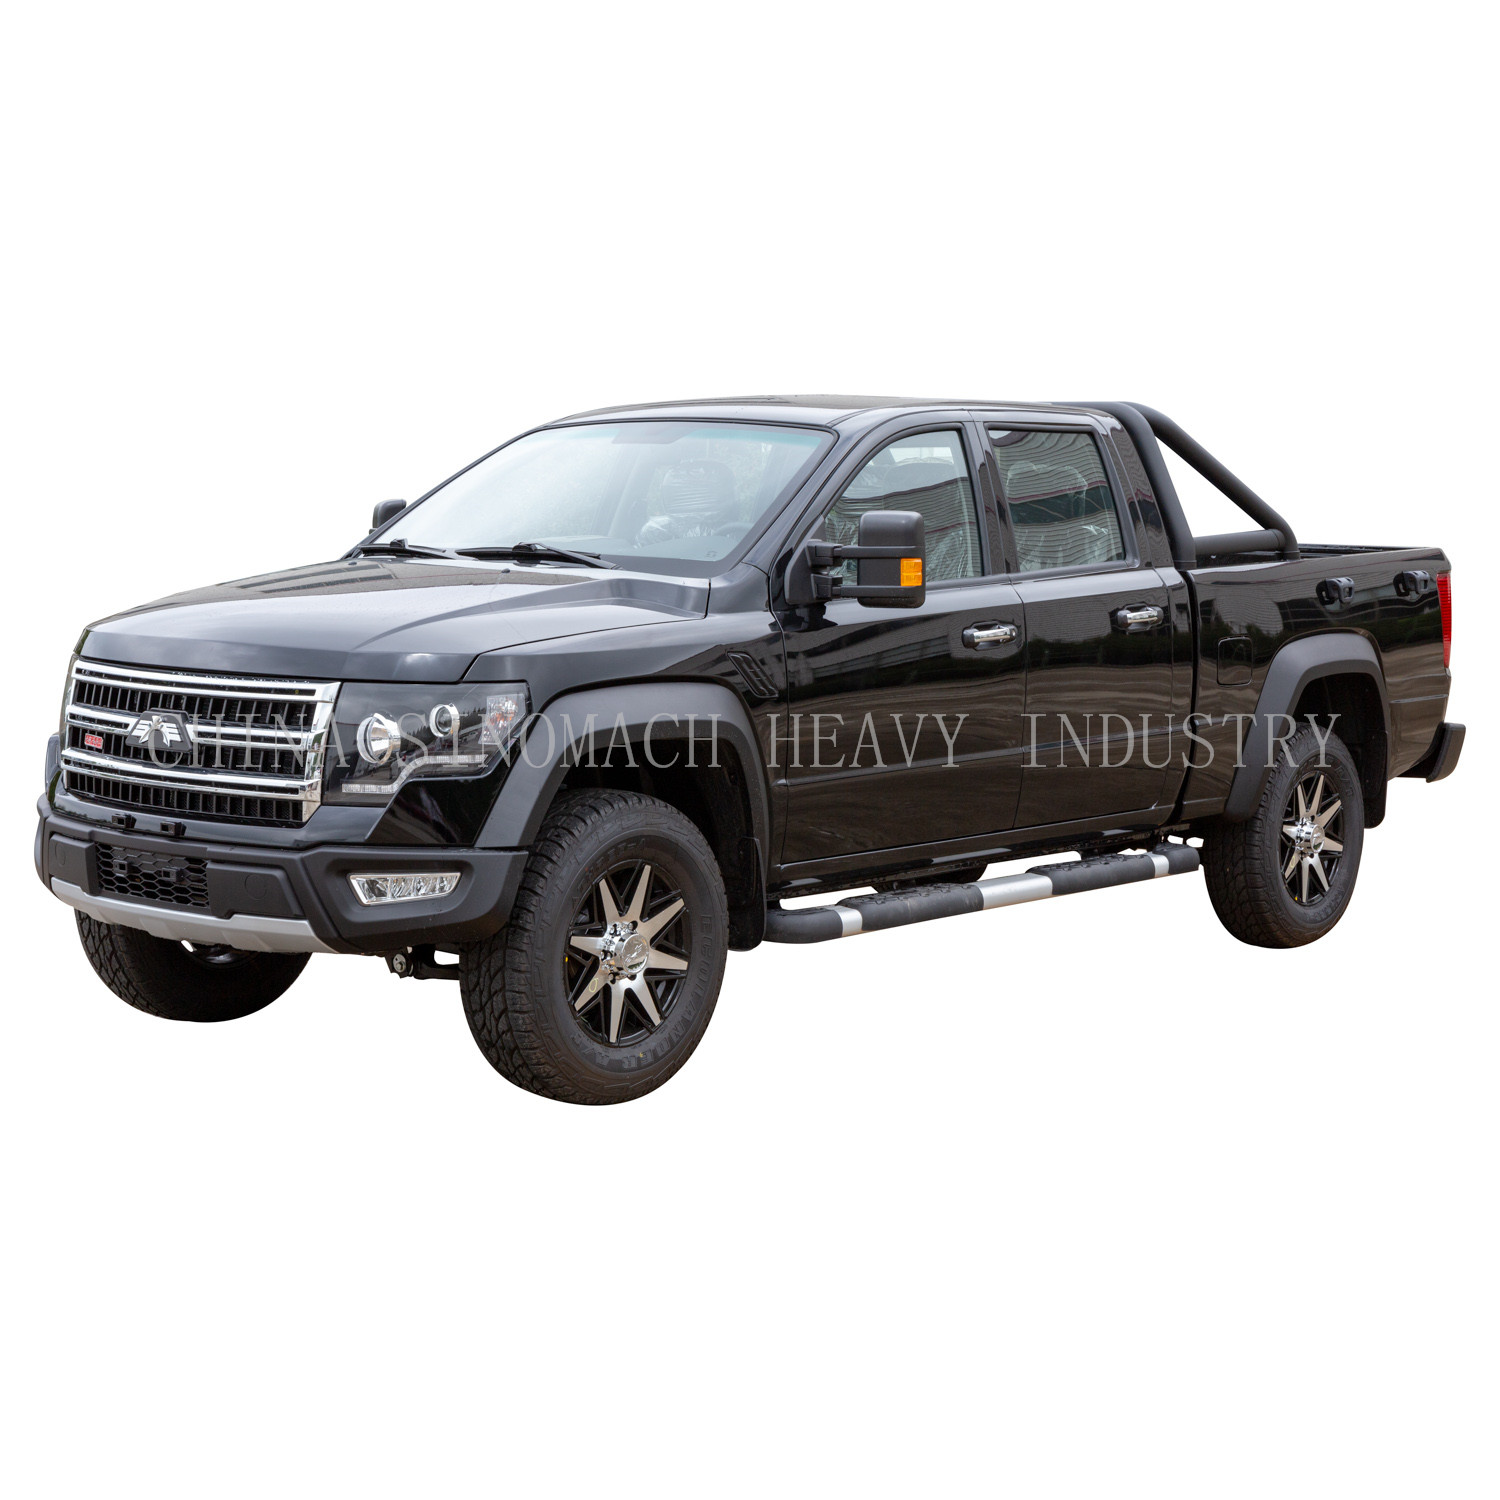 Sniomach New Energy Car CHENGFA Engine 4 Wheel Drive Pickup Heavy-Duty Cargo <strong>Truck</strong>